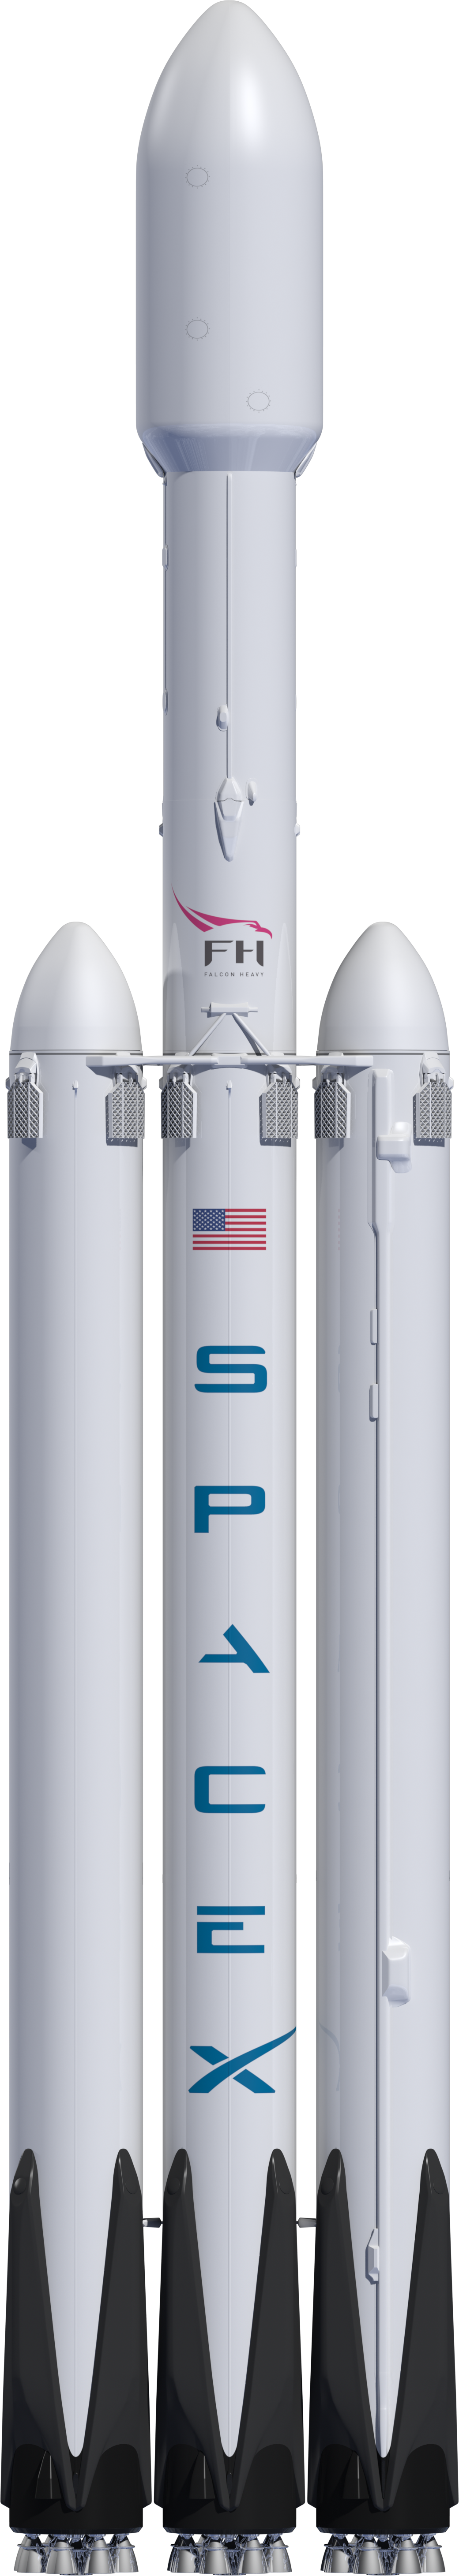 Space x png. Falcon heavy spacex